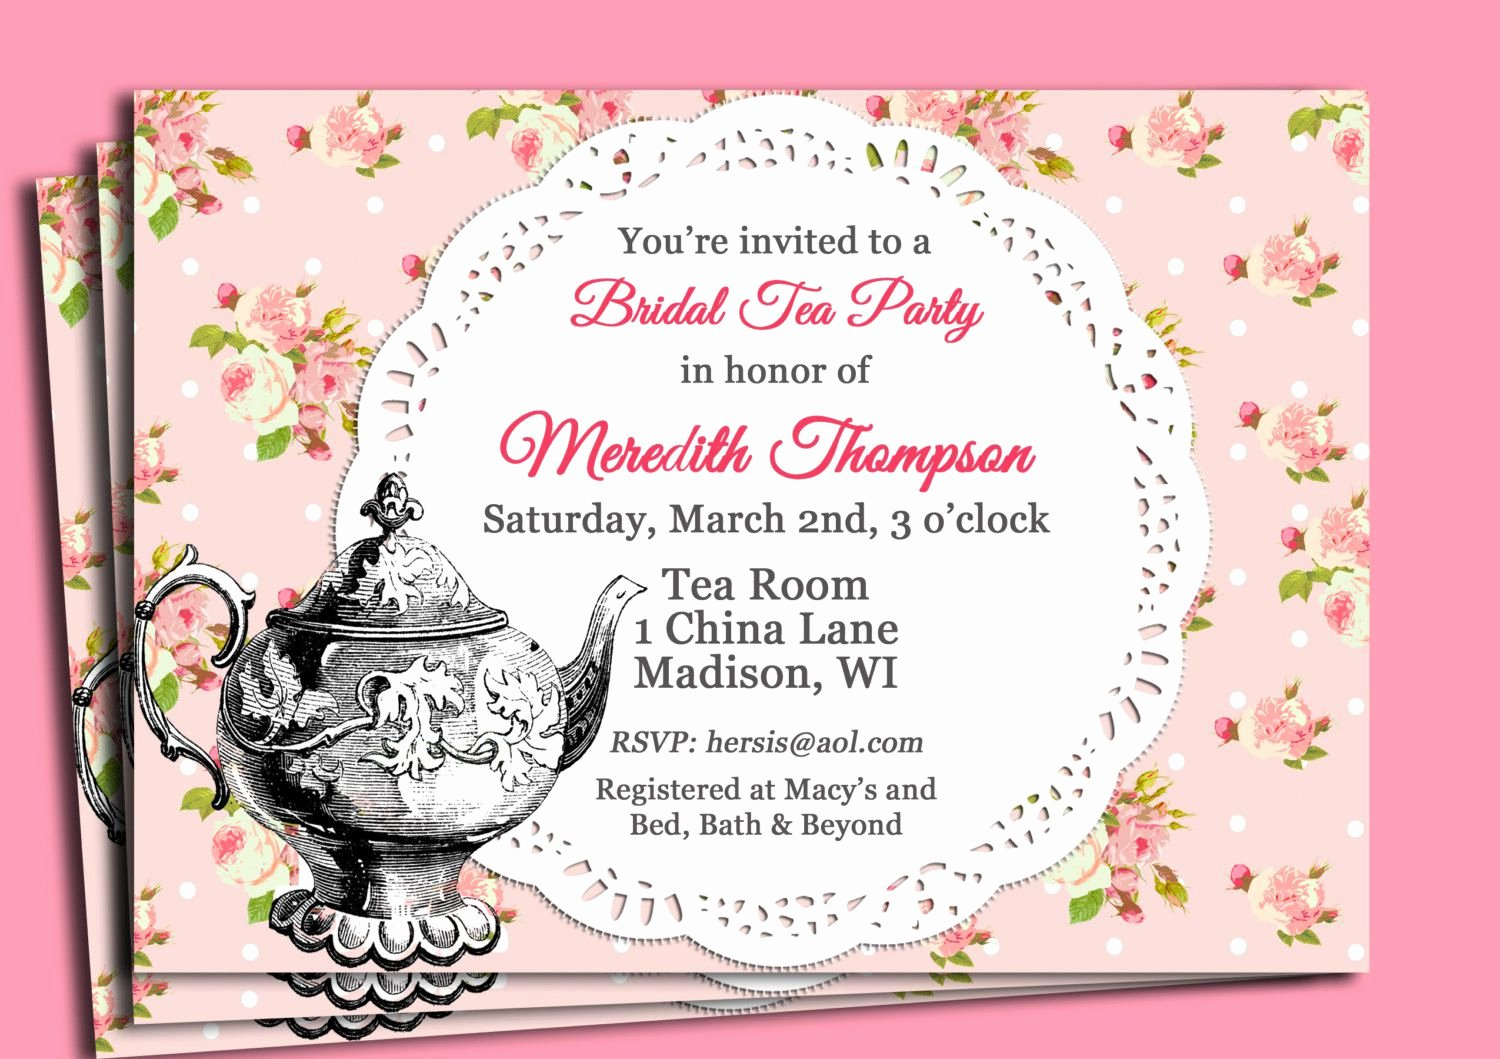 Bridal Shower Tea Party Invitations Free Printable